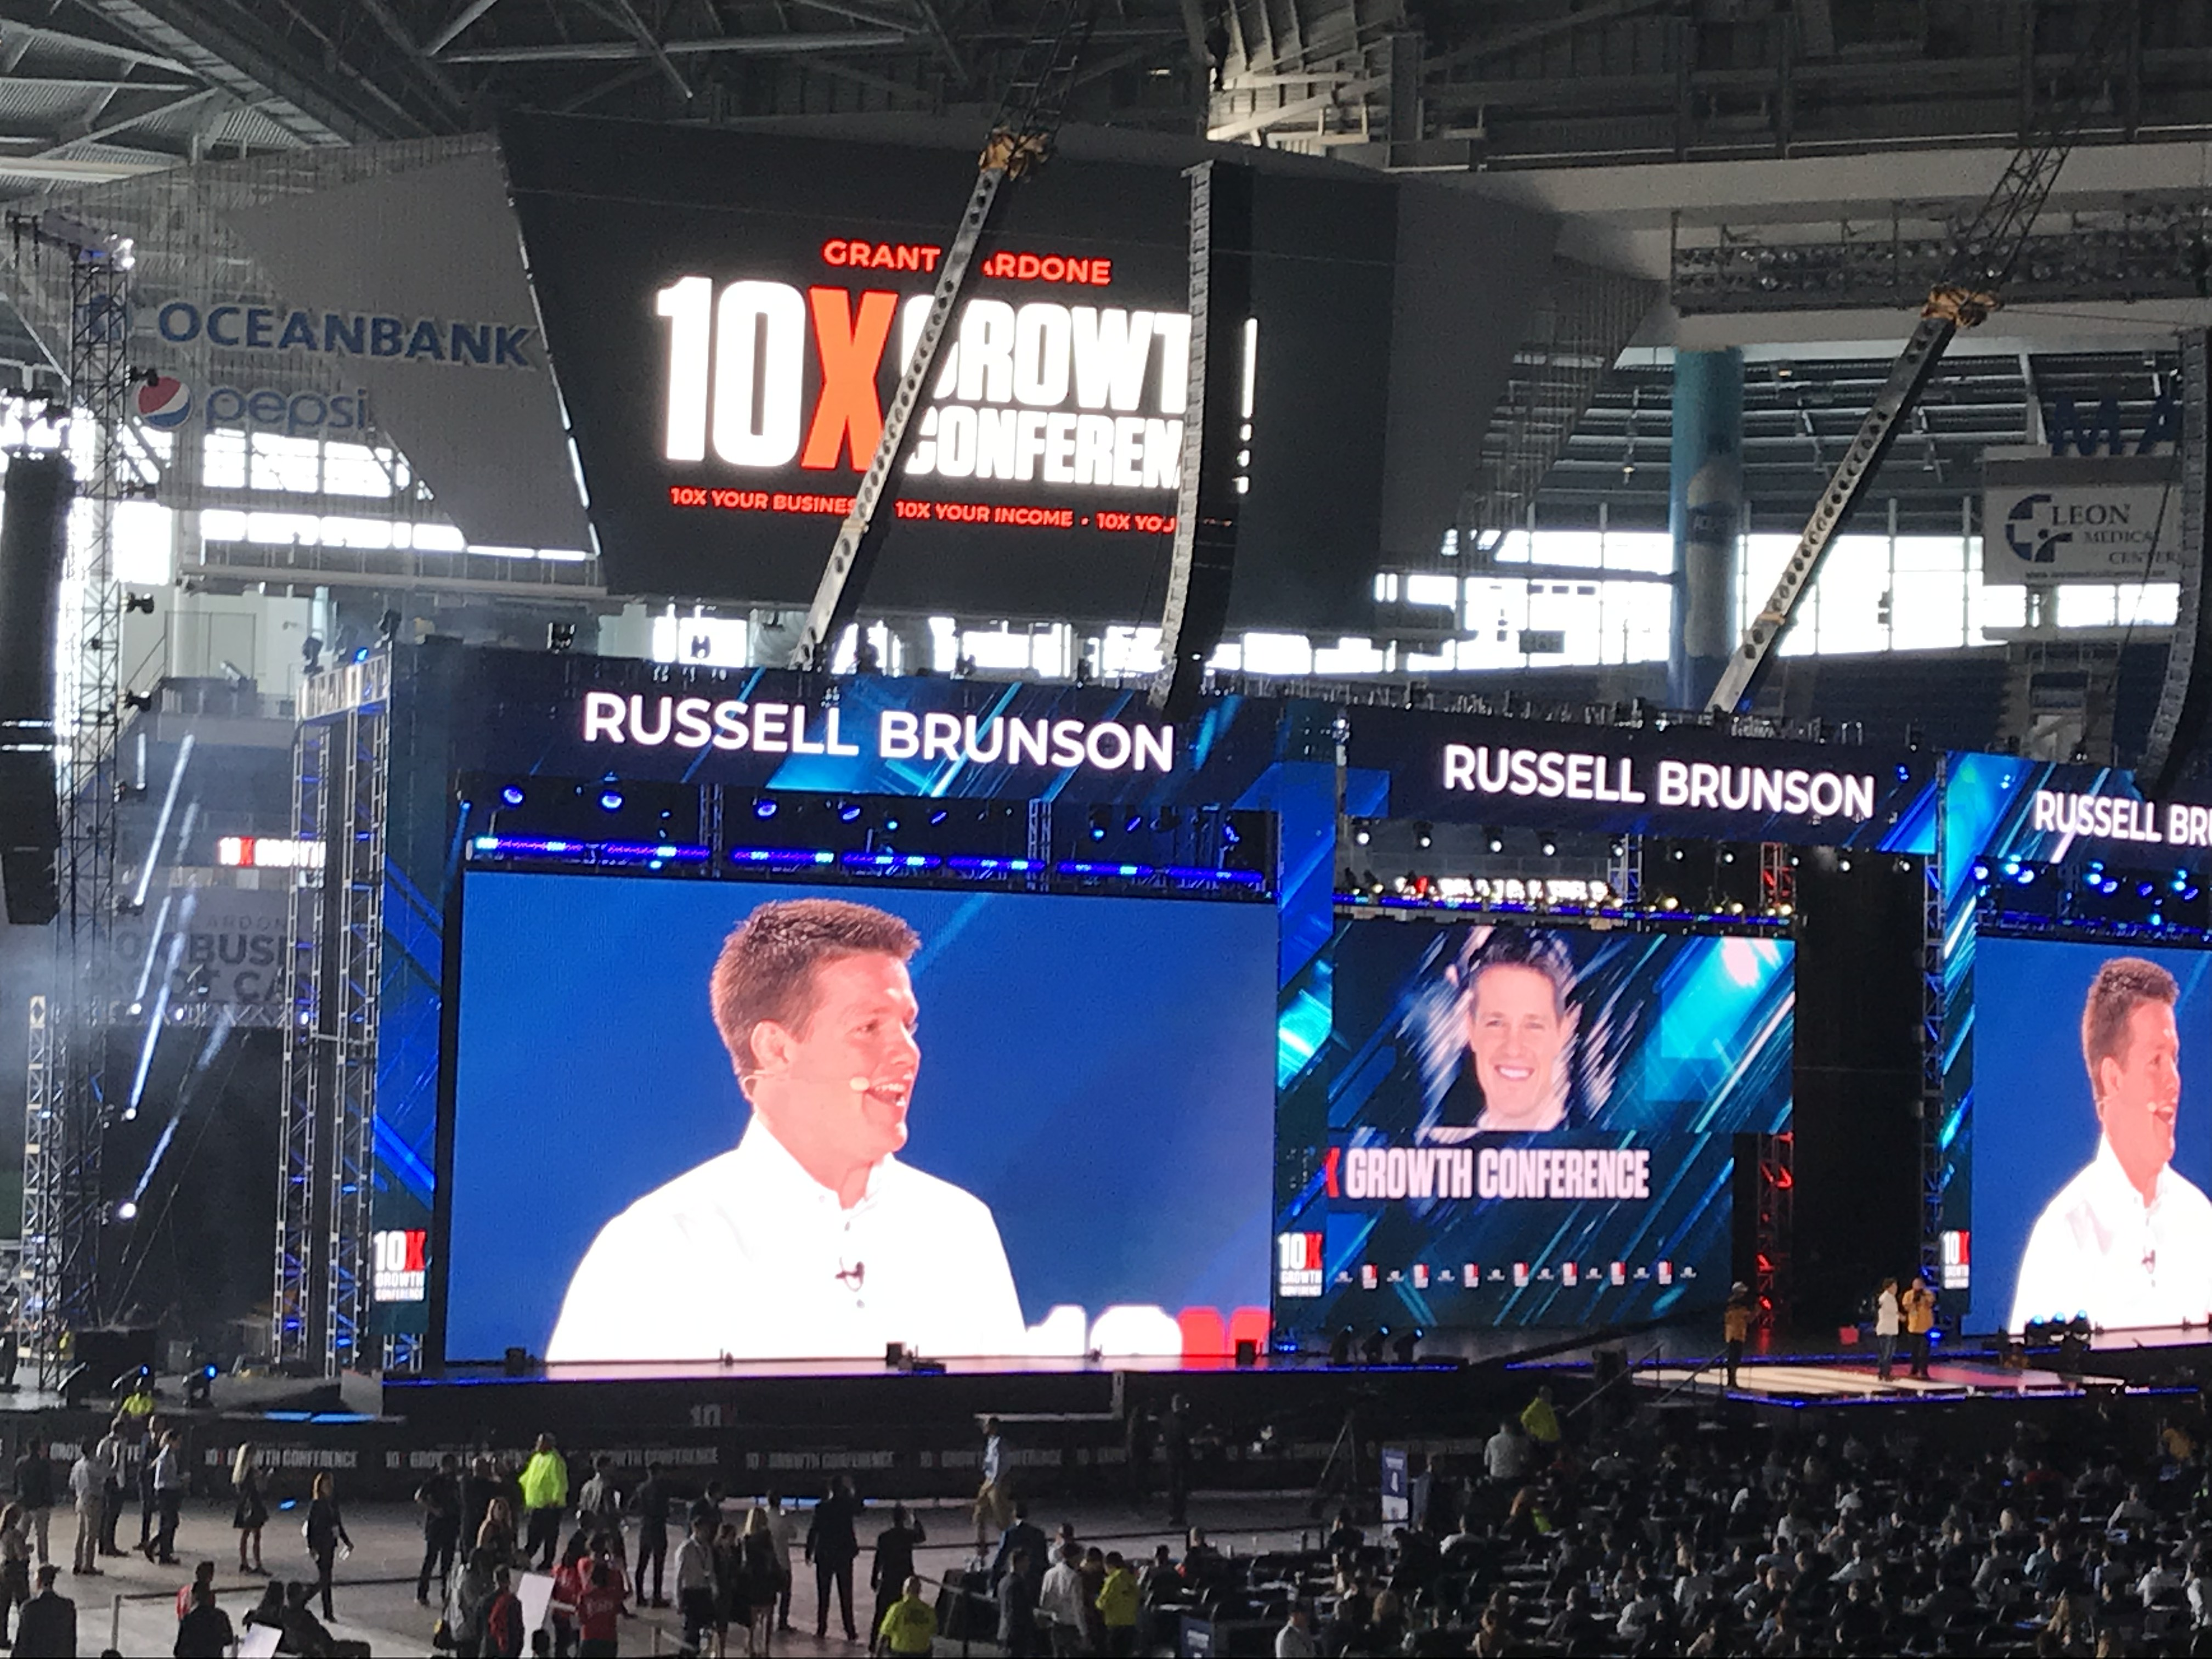 russel-brunson-onstage-at-10x-con-1